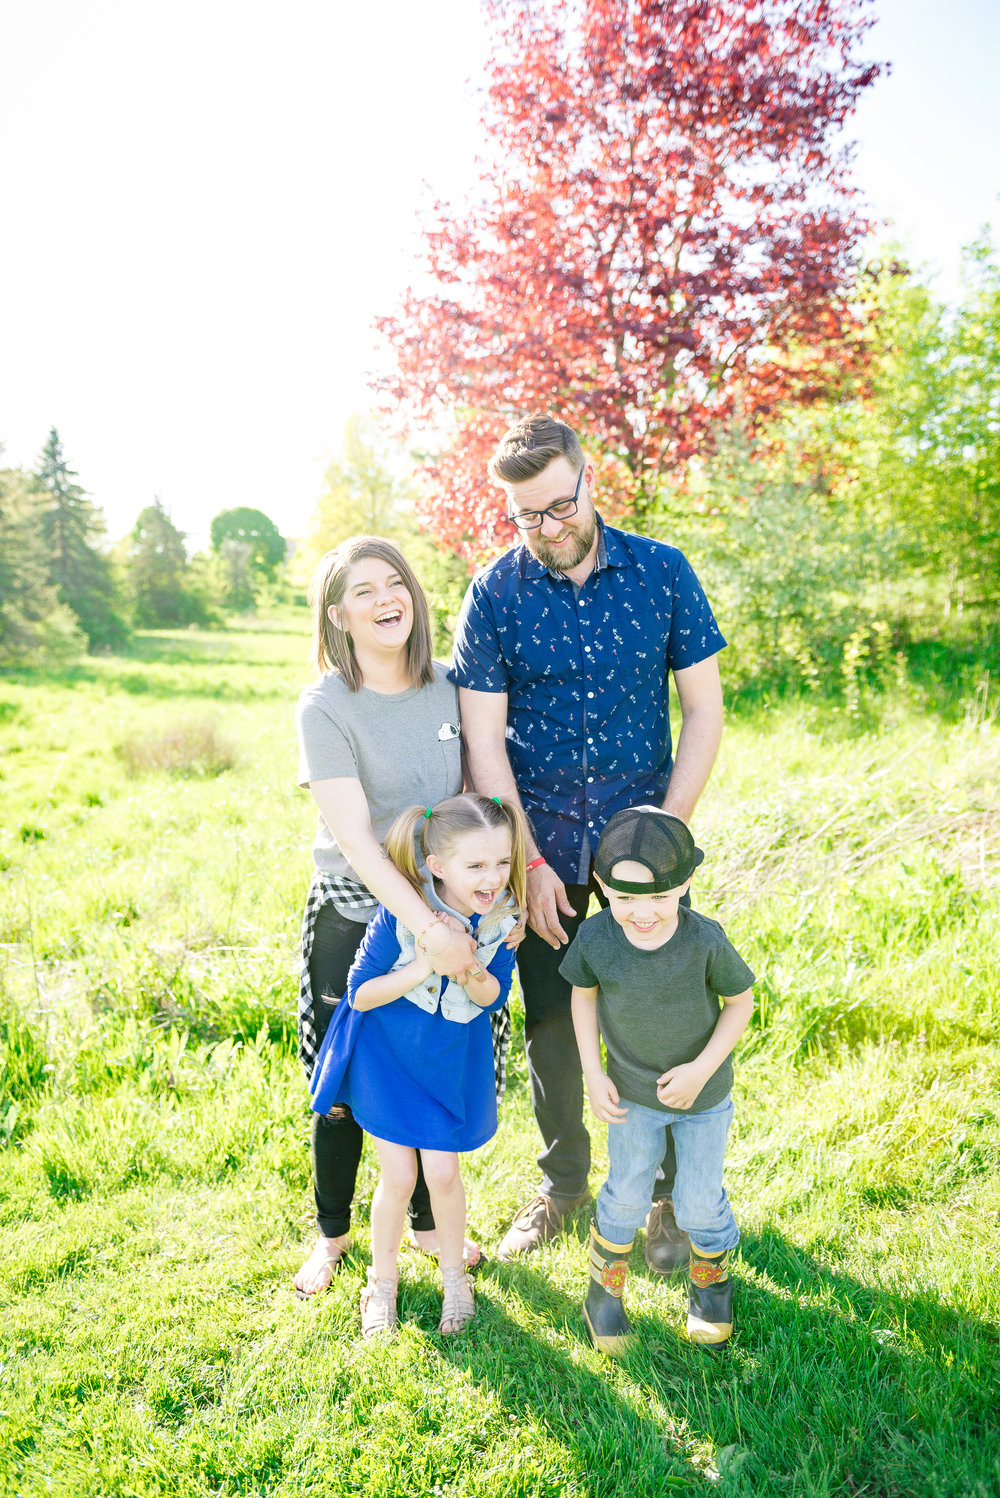 brittany-humes-photography-family-photographer.jpg